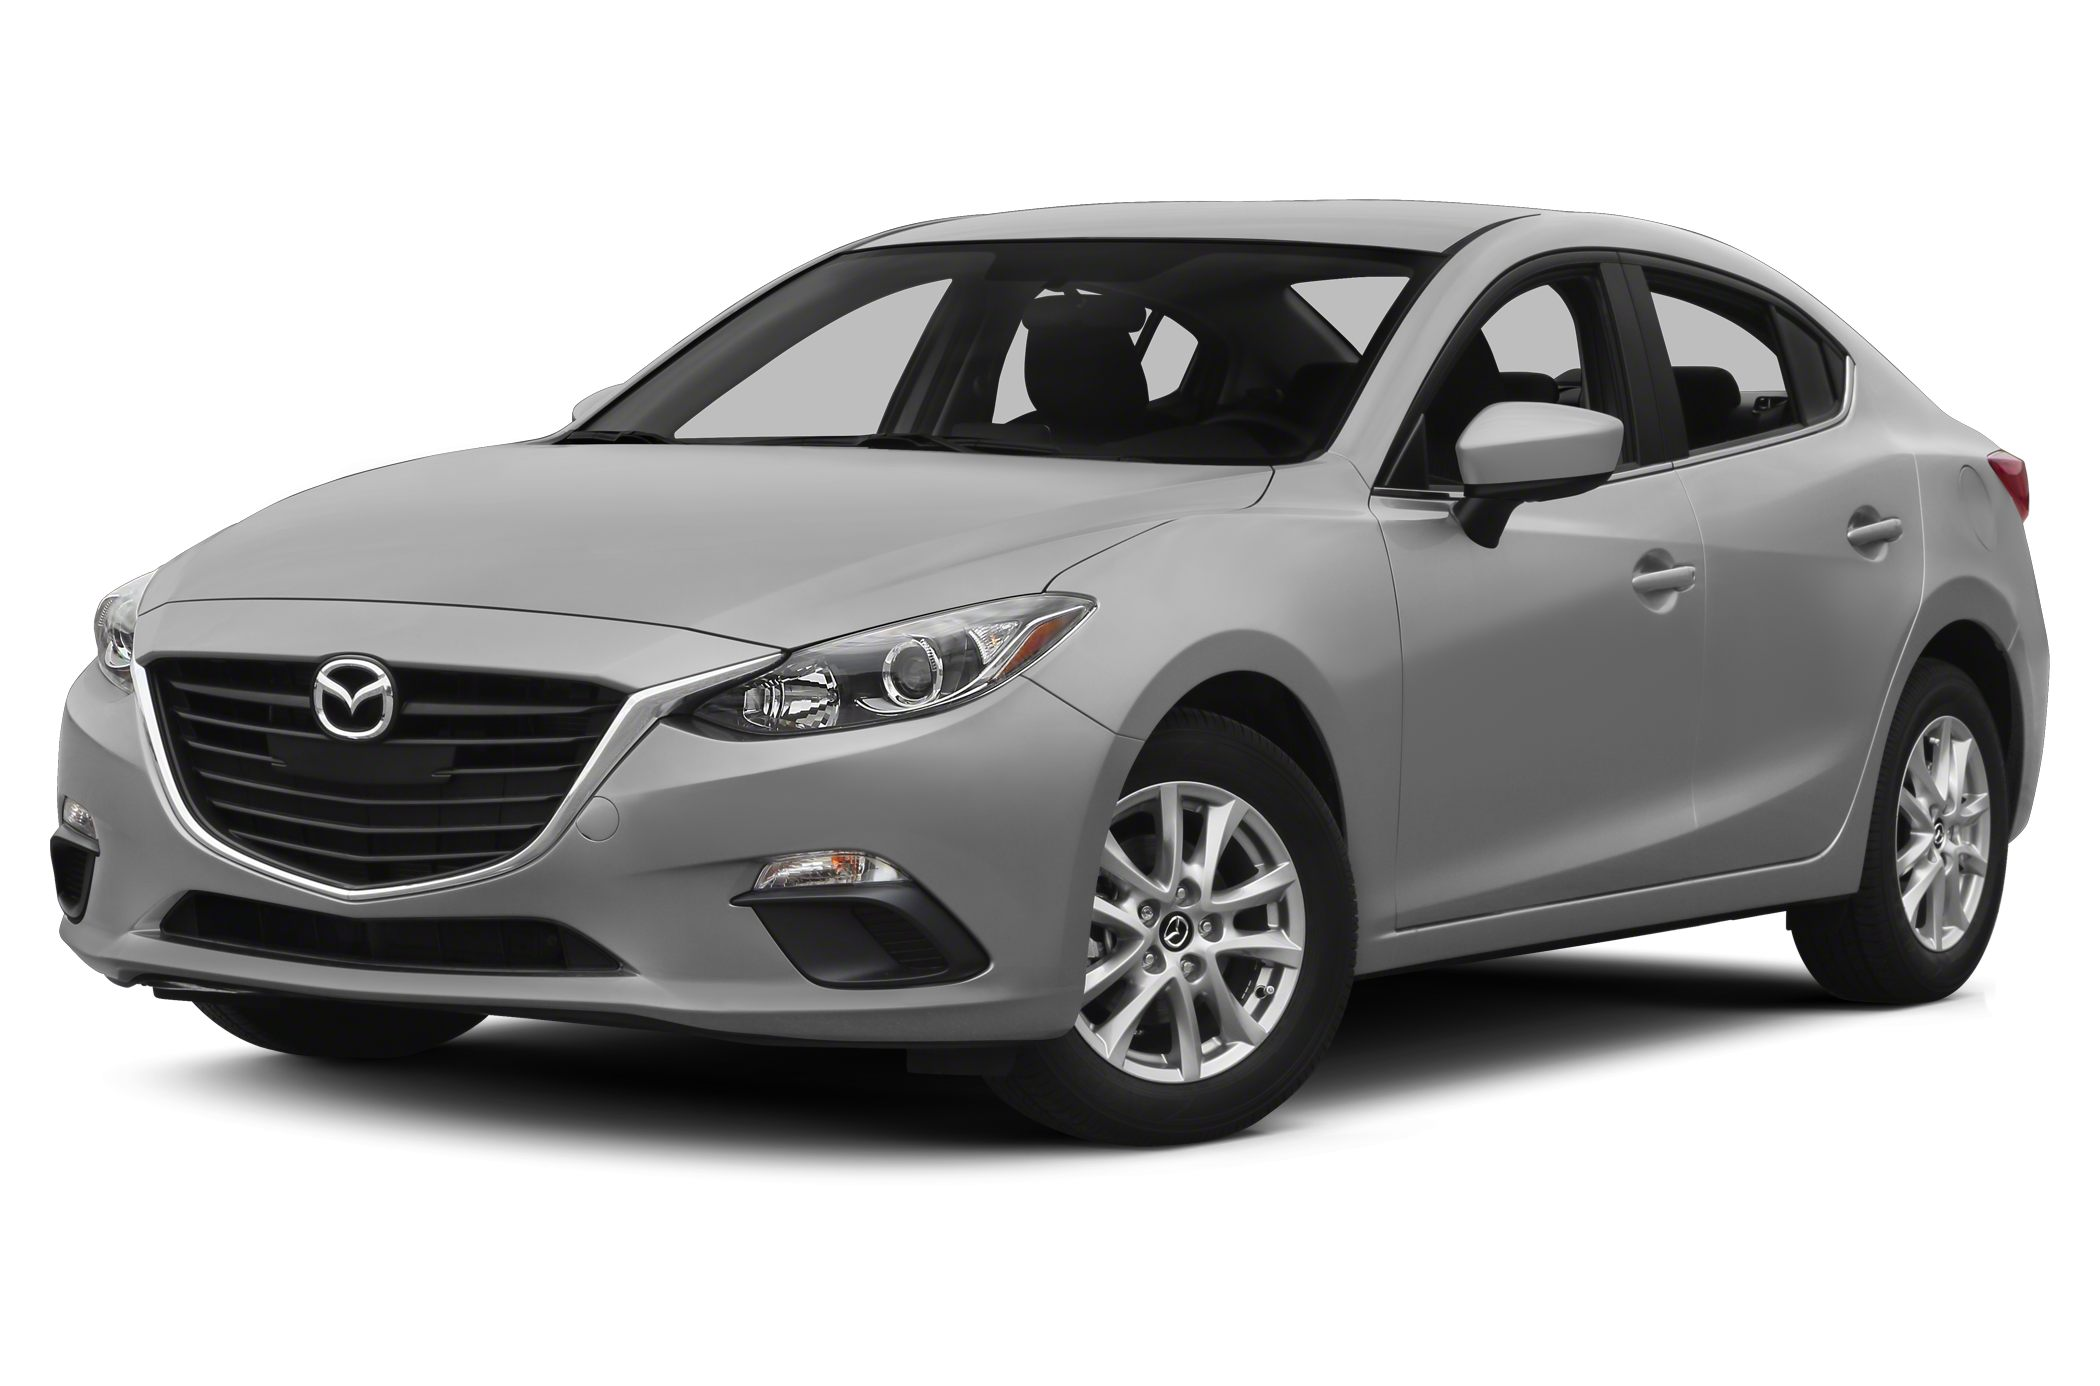 2015 Mazda Mazda3 I Touring Sedan for sale in Mentor for $23,040 with 0 miles.